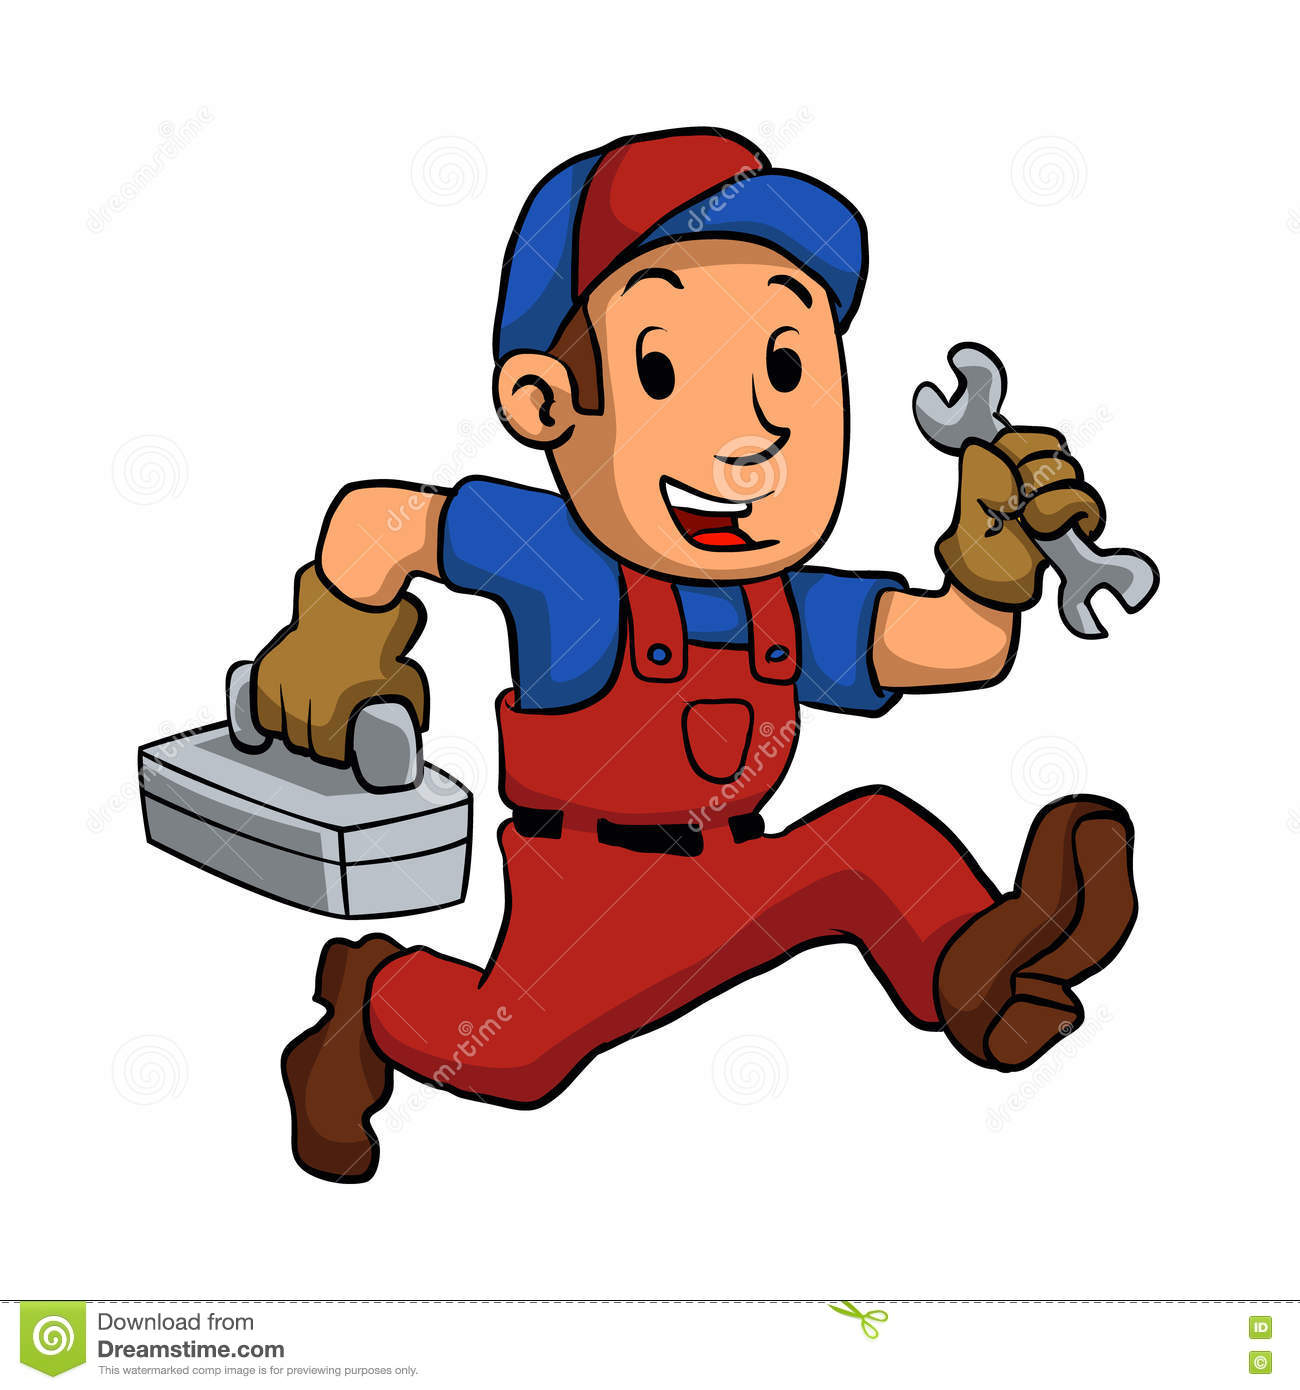 Handyman Running With A Toolbox. Vector illustration Royalty Free Stock  Image